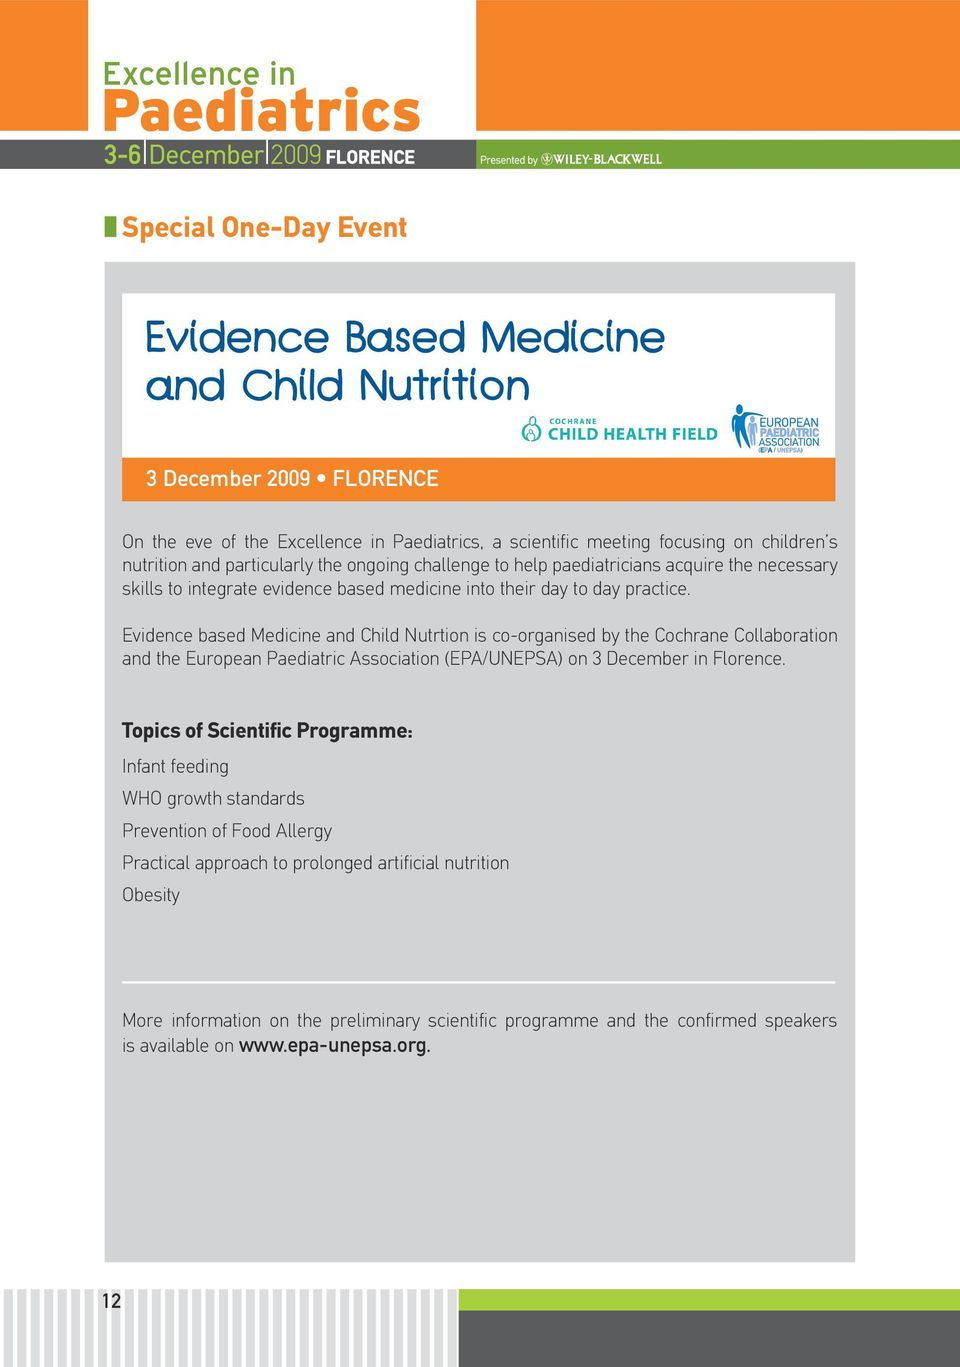 Evidence based Medicine and Child Nutrtion is co-organised by the Cochrane Collaboration and the European Paediatric Association (EPA/UNEPSA) on 3 December in Florence.